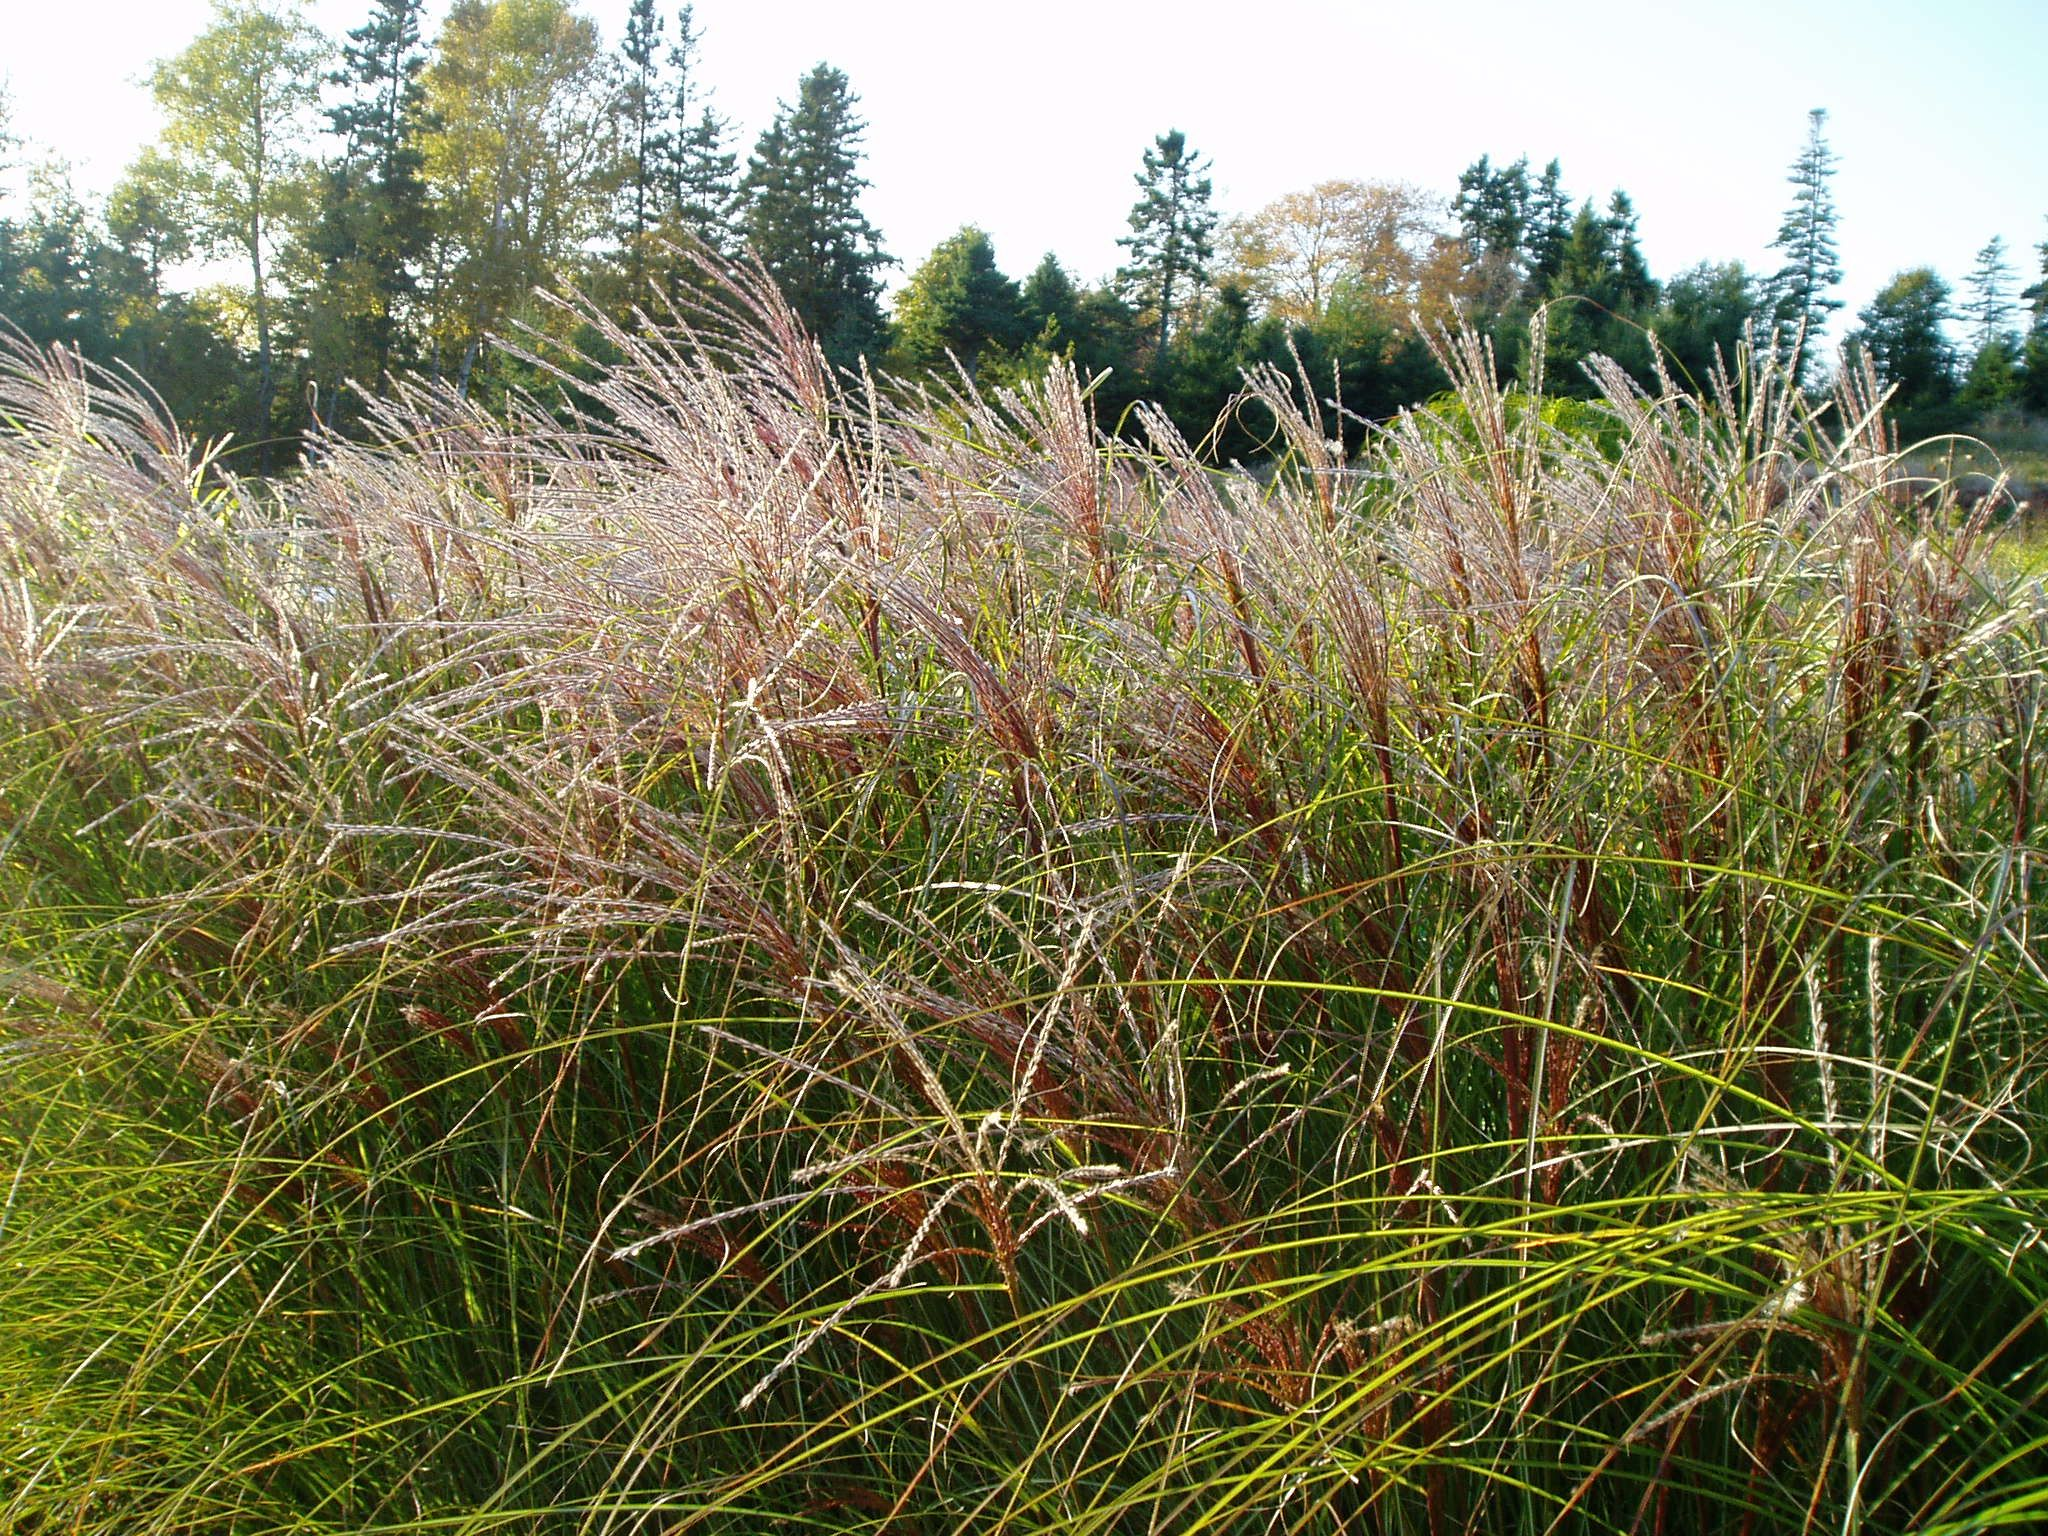 Buy blue dune lyme grass in nw arkansas - Miscanthus Sinensis Sarabande Grows 4 1 2 5 Ft Tall A Warm Season Grass And Very Similar To Gracillimus Except A Little Shorter And It Blo